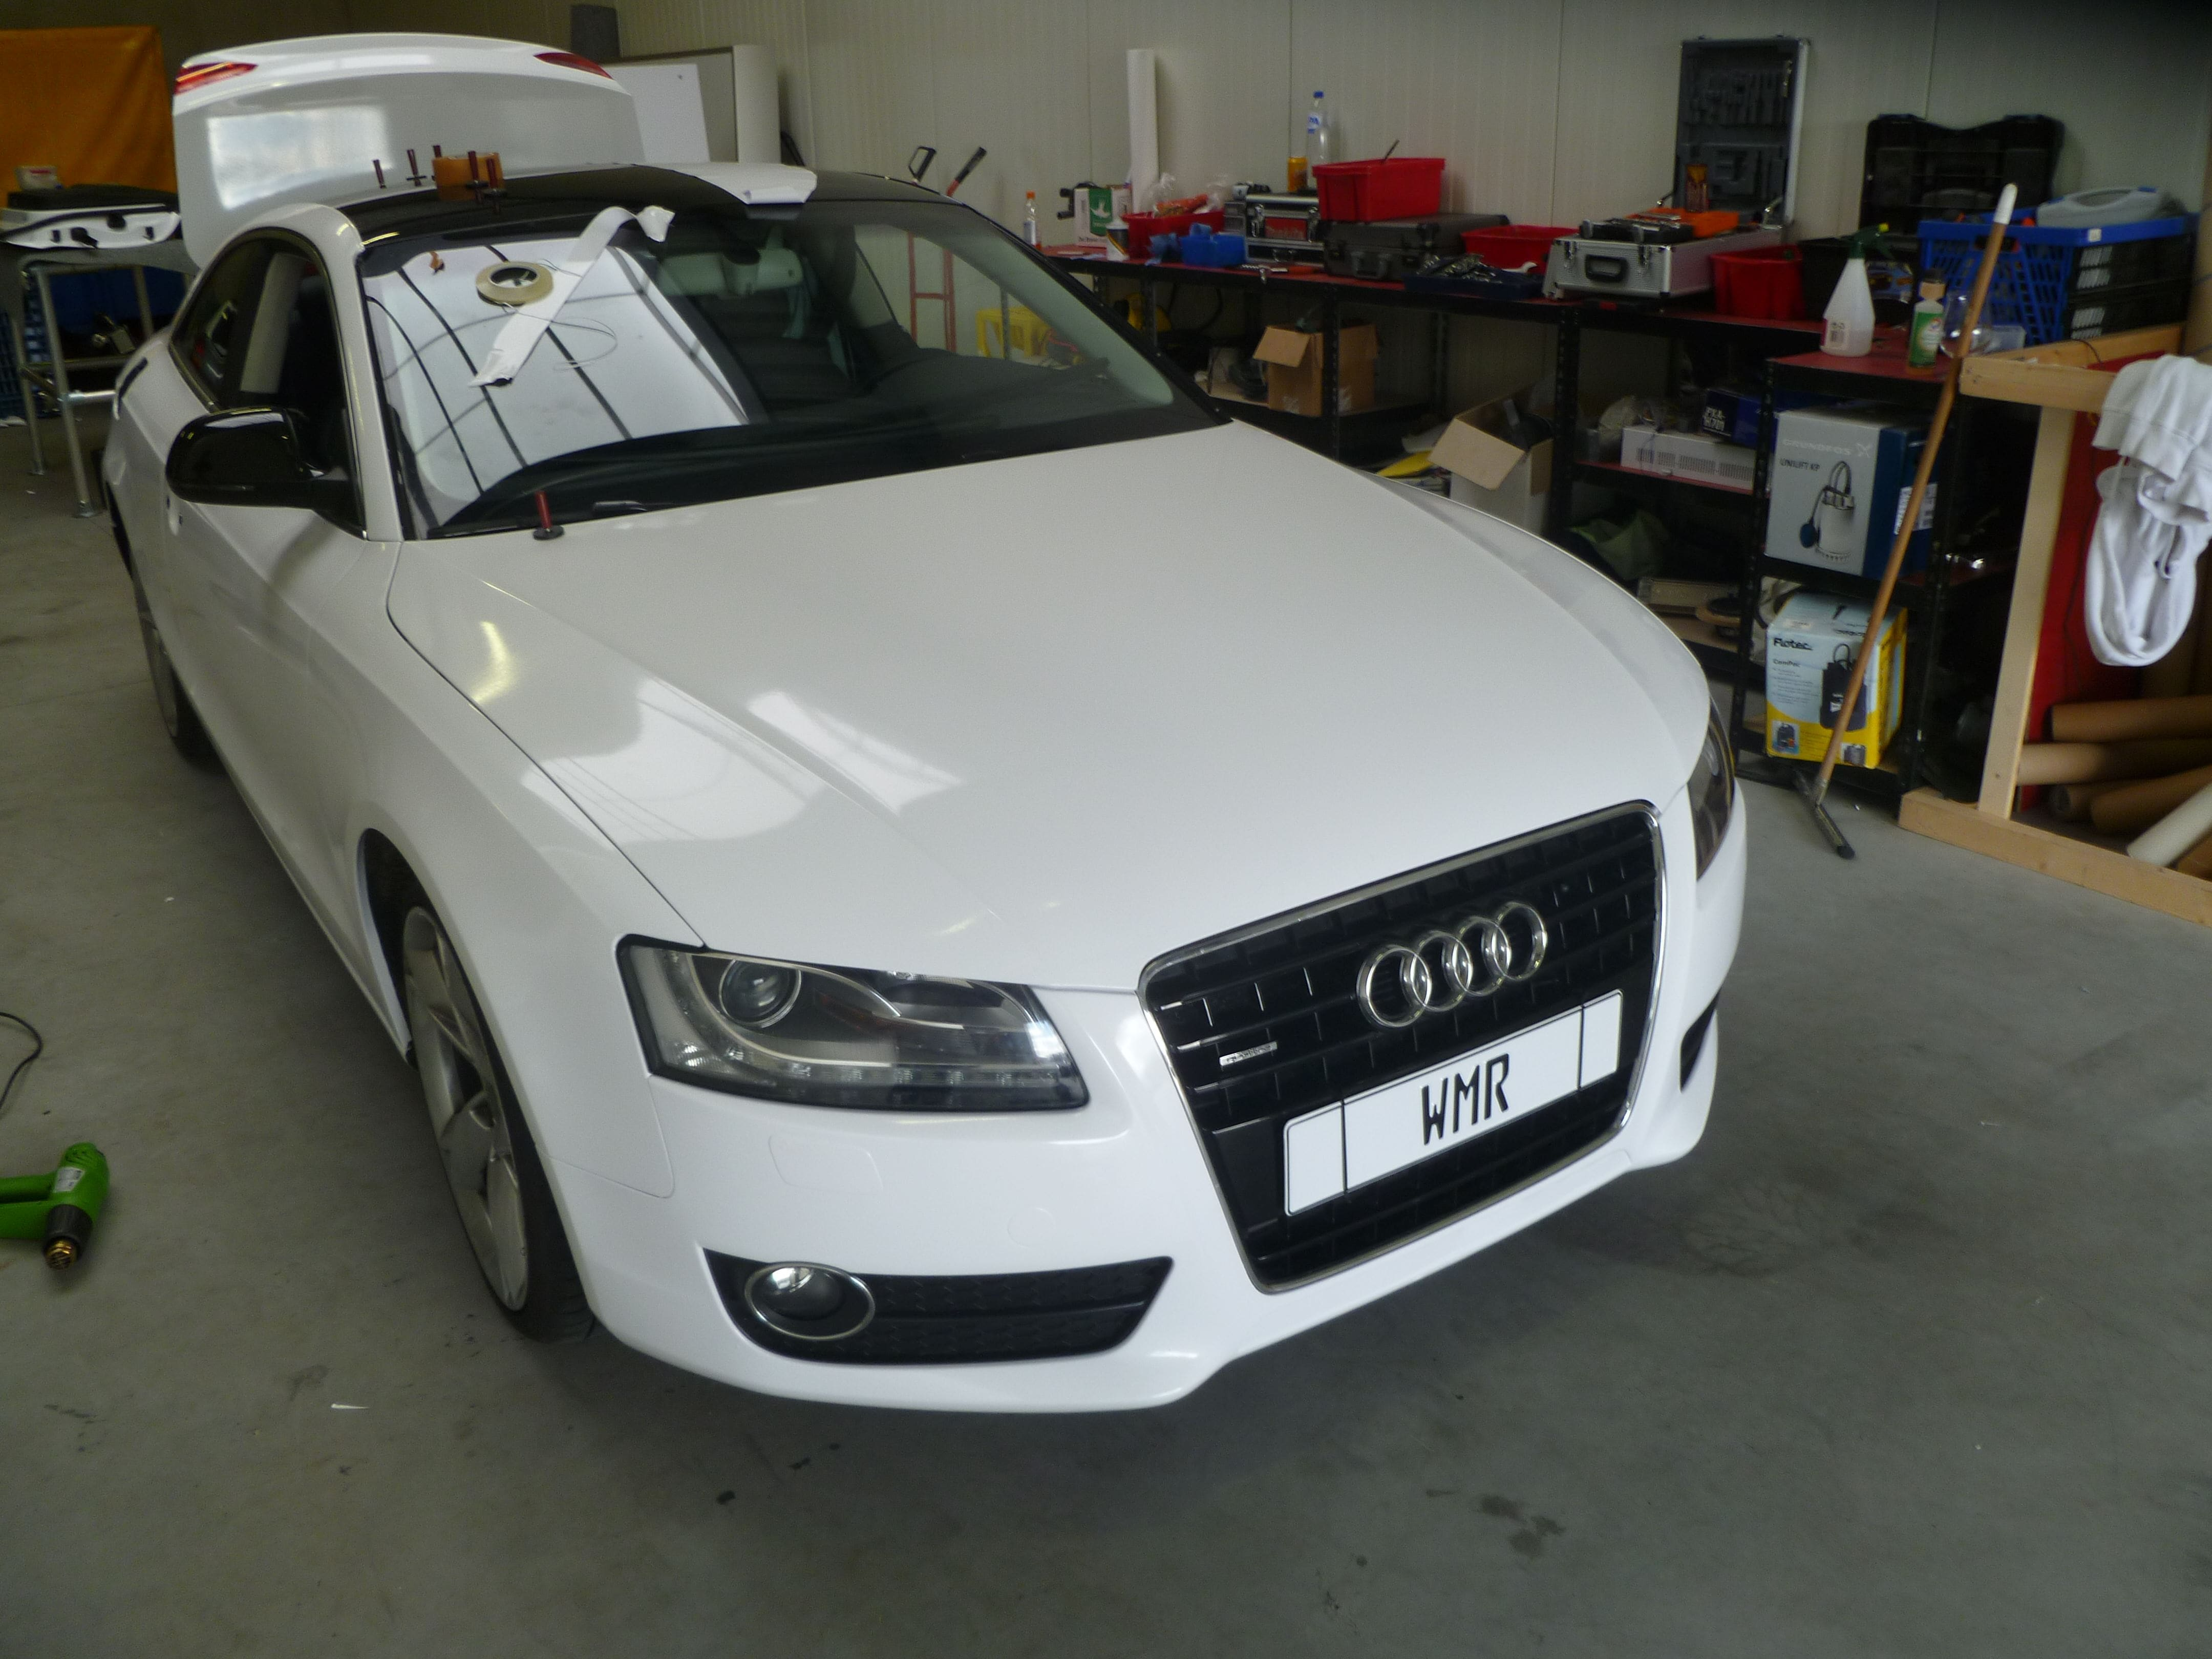 Audi A5 coupe met Metallic Witte Wrap, Carwrapping door Wrapmyride.nu Foto-nr:4720, ©2020